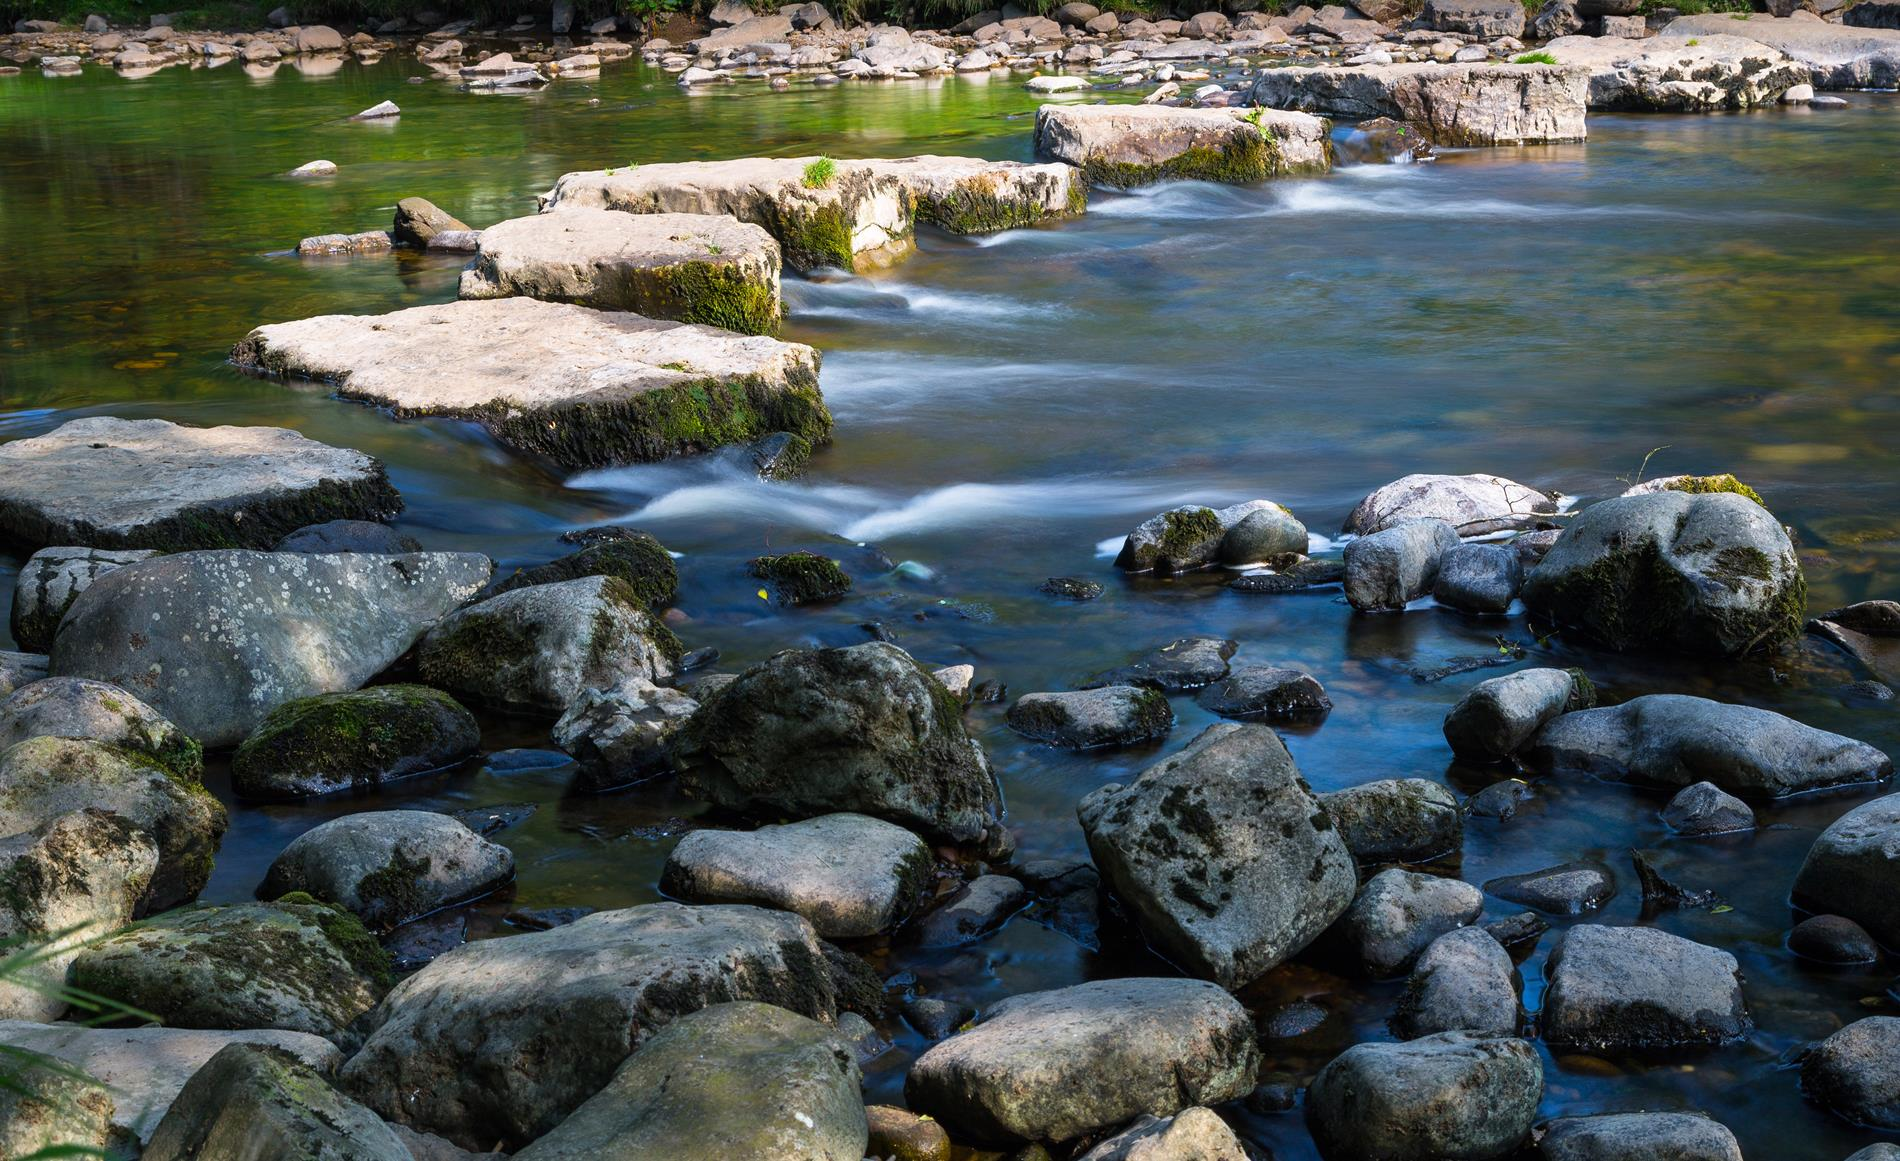 Stepping Stones Stream and Rocks